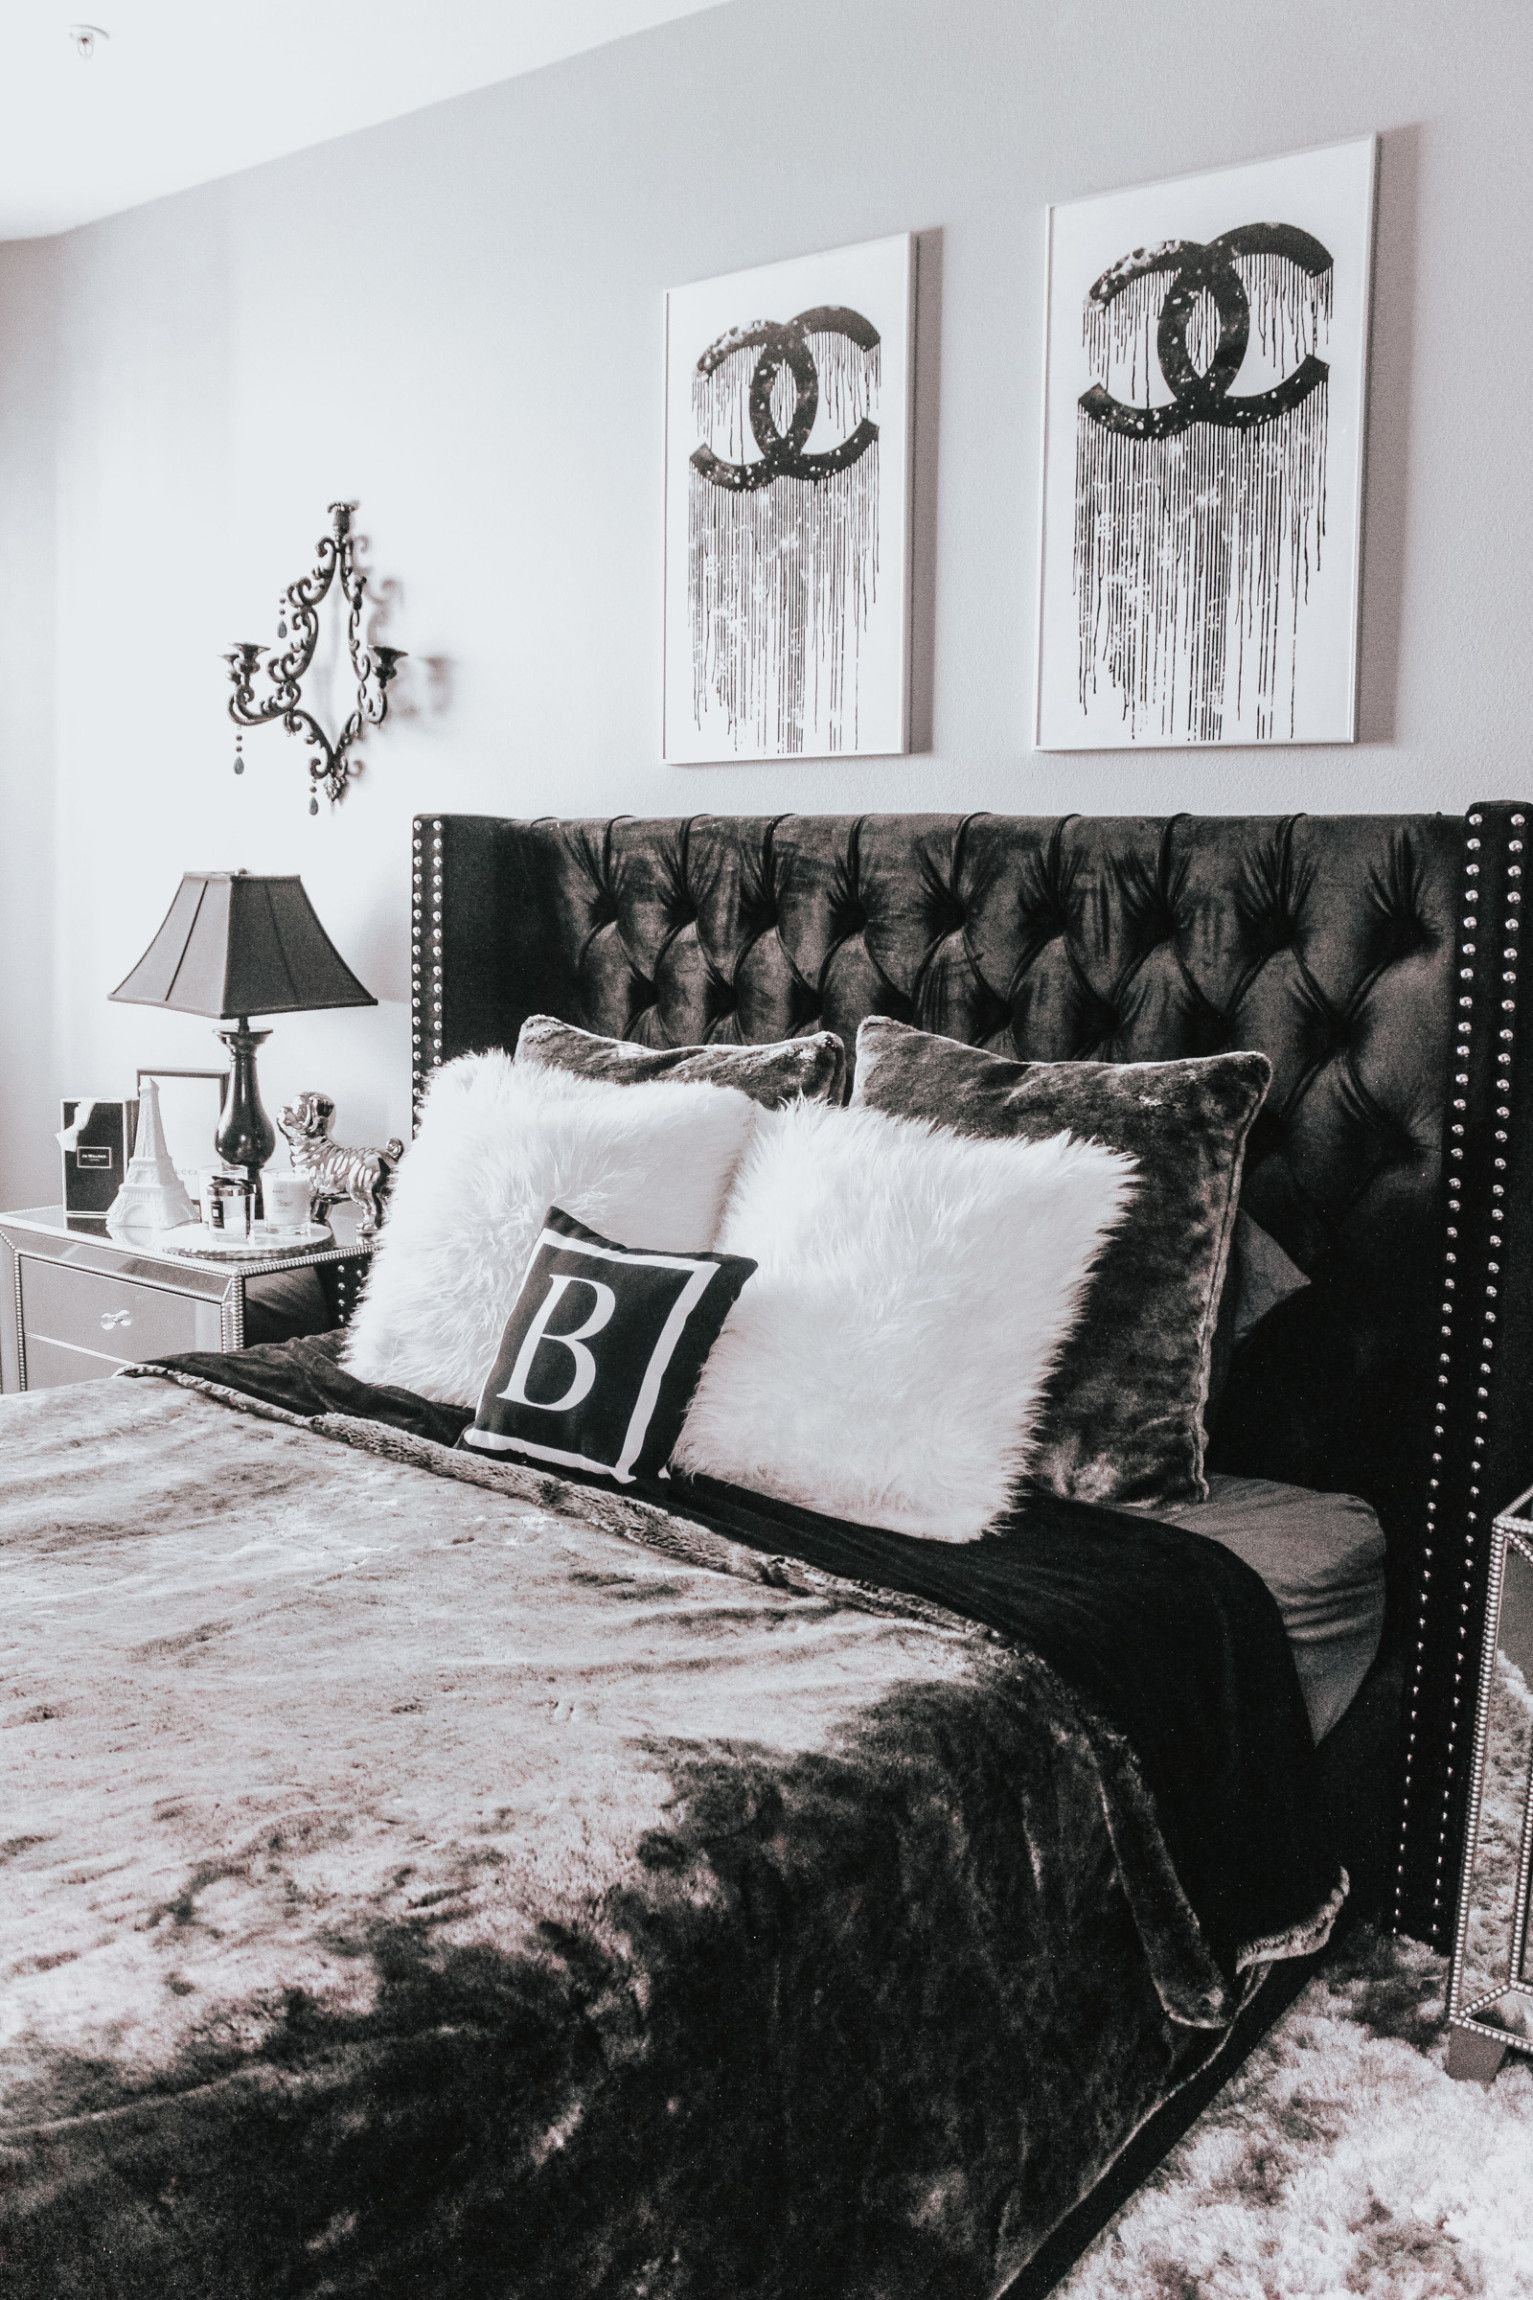 Bedroom Decor Updates Blondie In The City White Bedroom Decor Black Bedroom Decor Grey Bedroom Decor